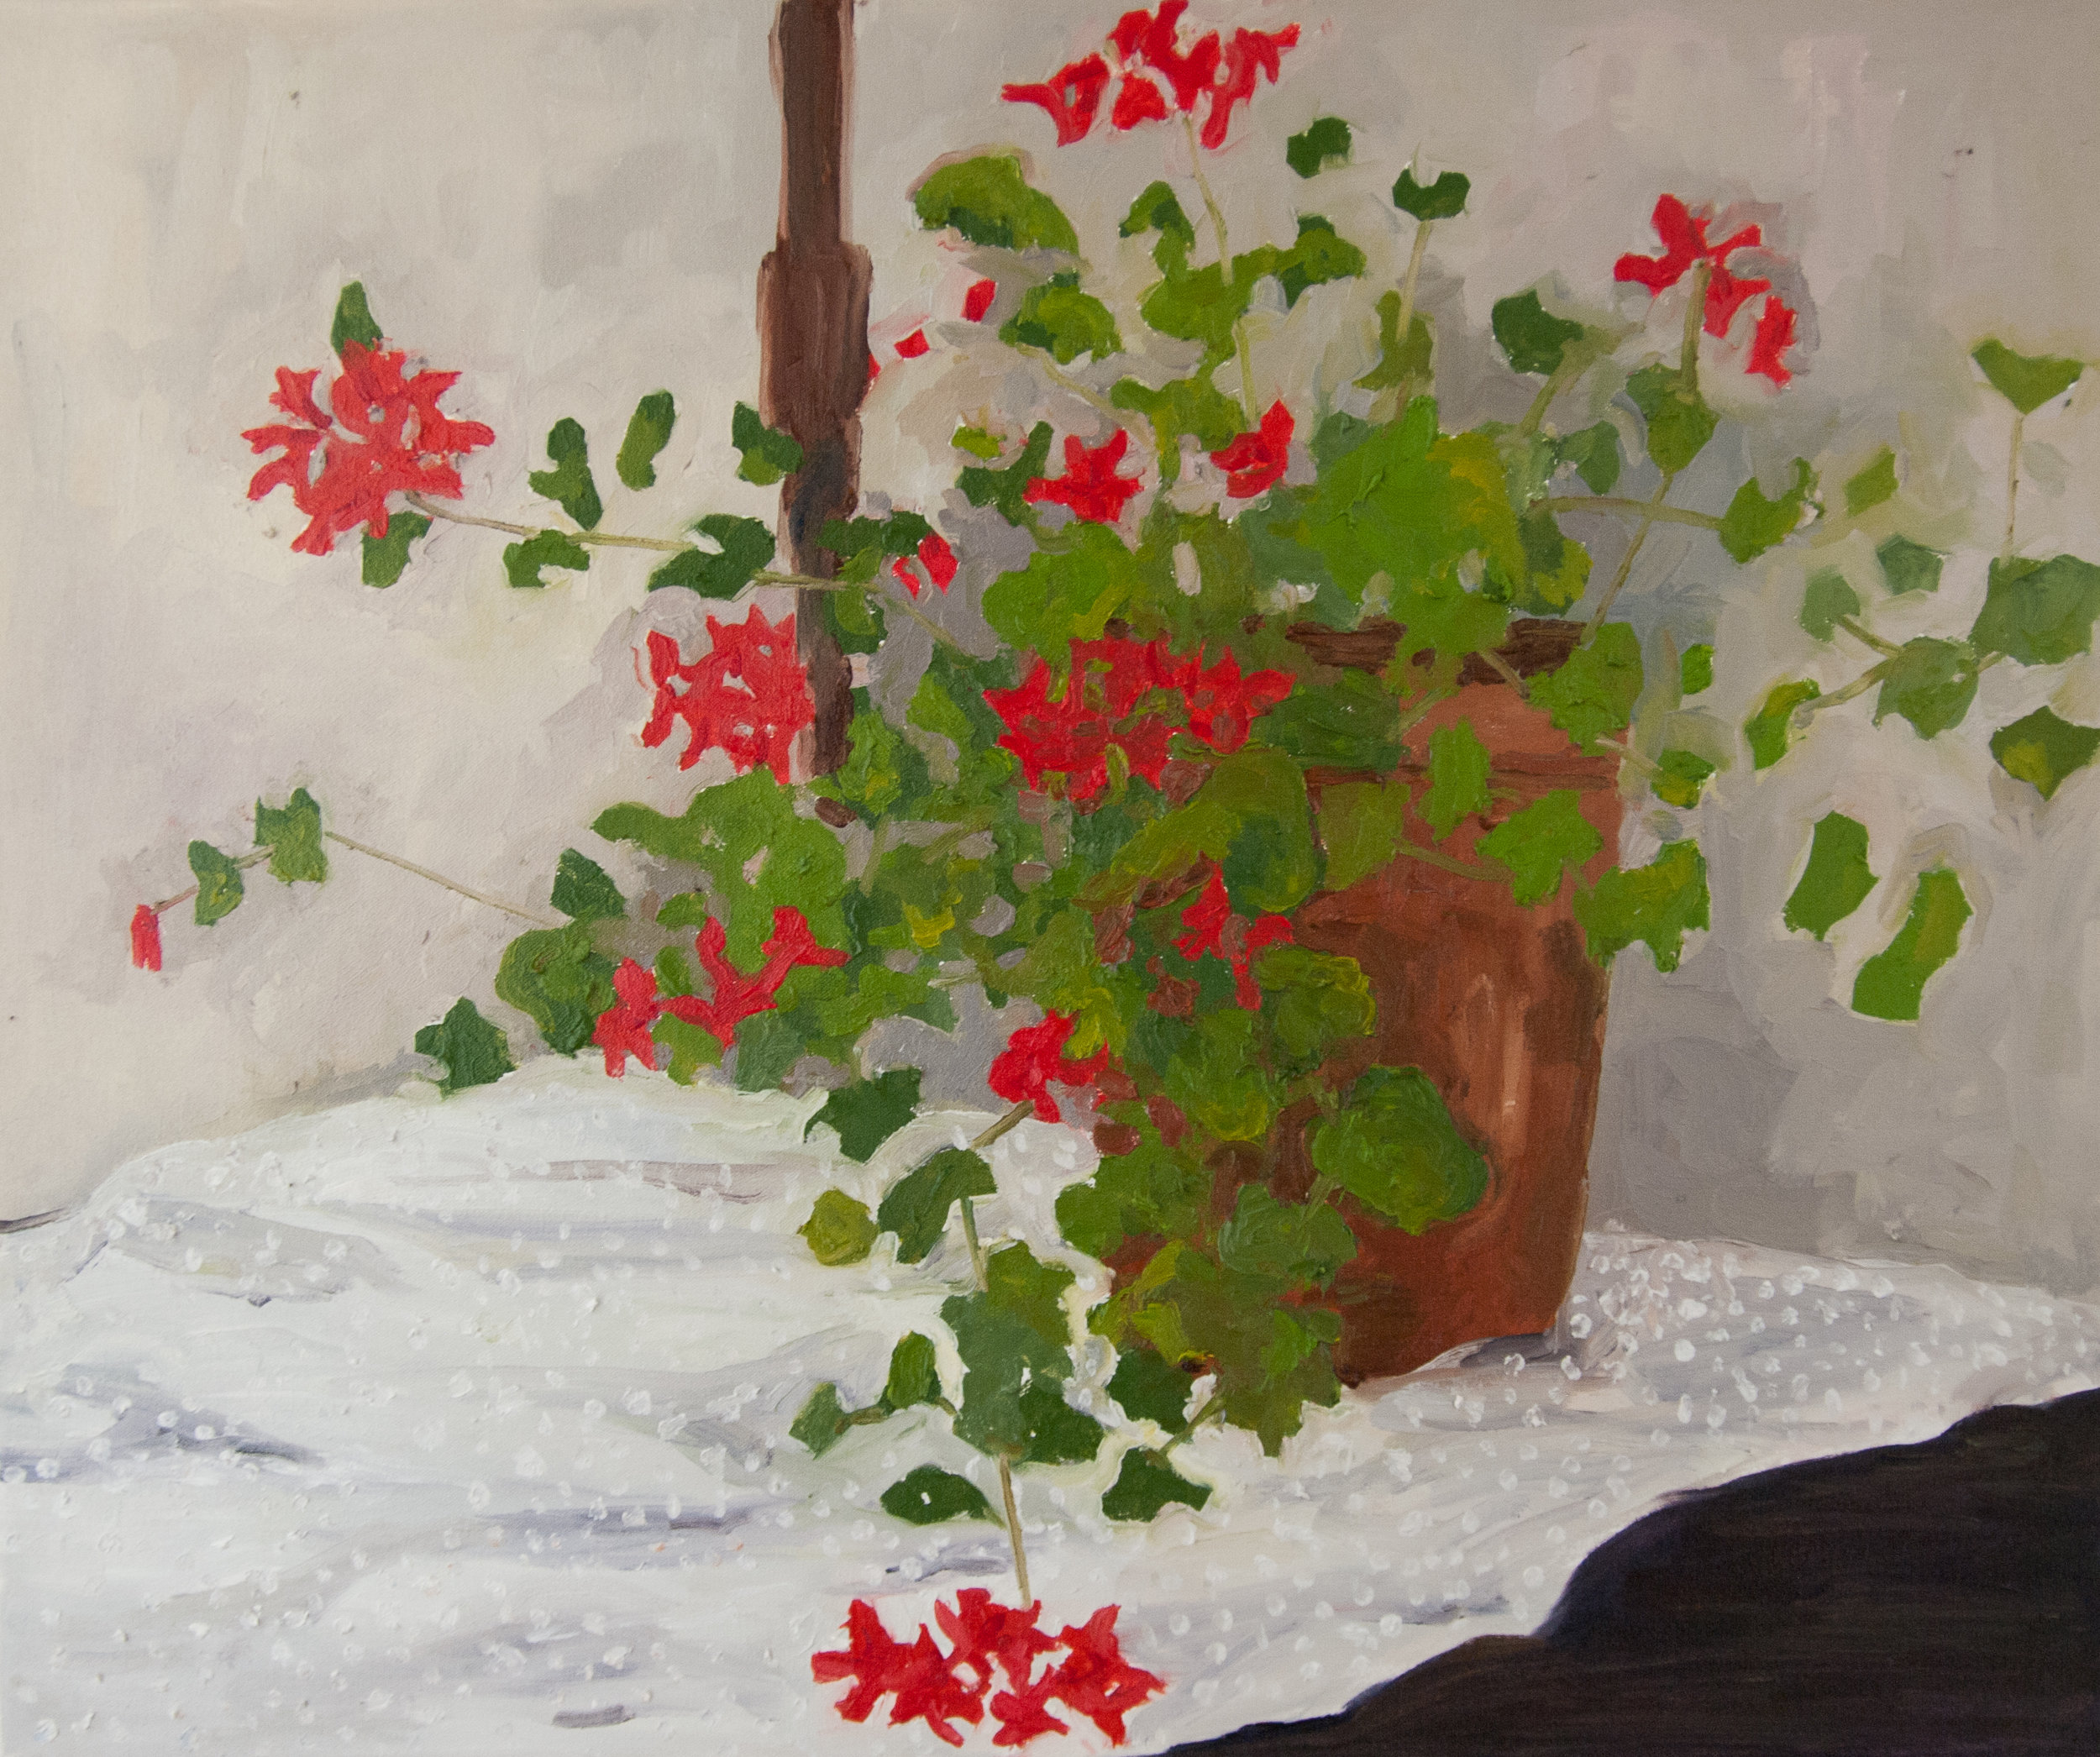 Geraniums and Swiss dots. Oil on linen canvas. 2016.